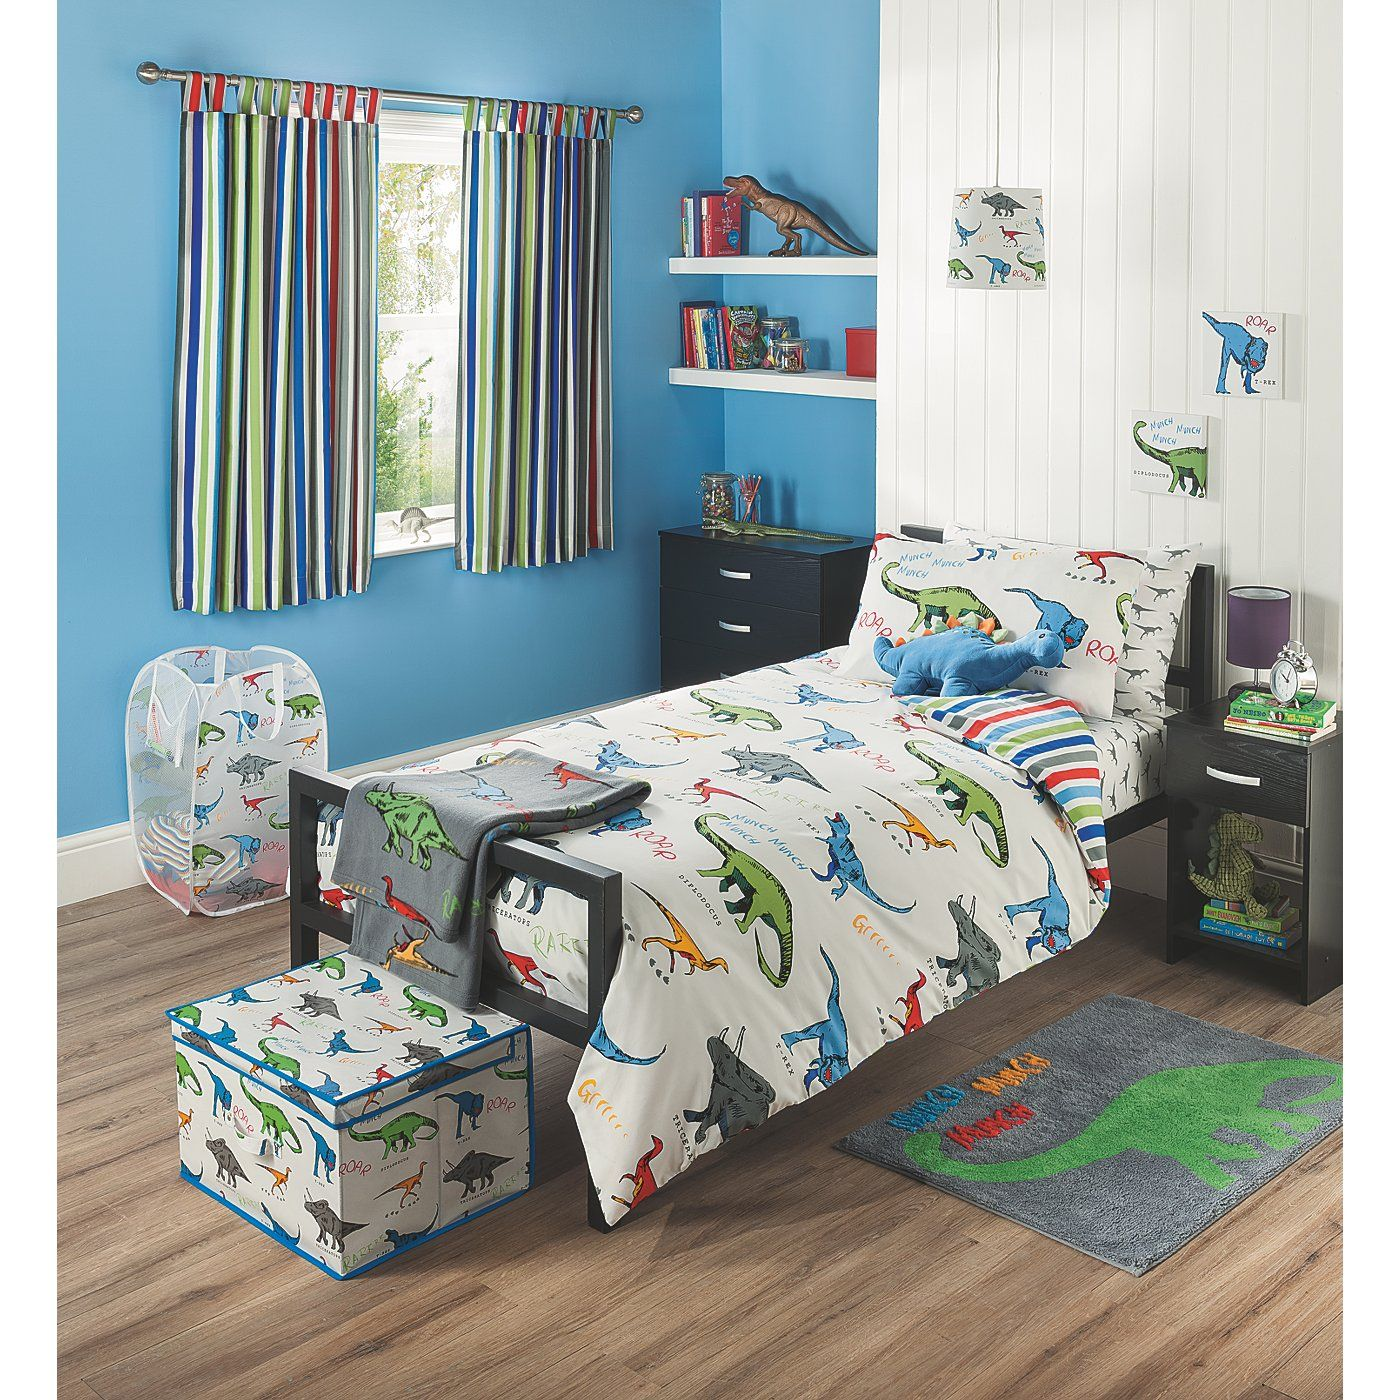 Buy george home dinosaurs bedroom range from our bedding for Dinosaur themed kids room